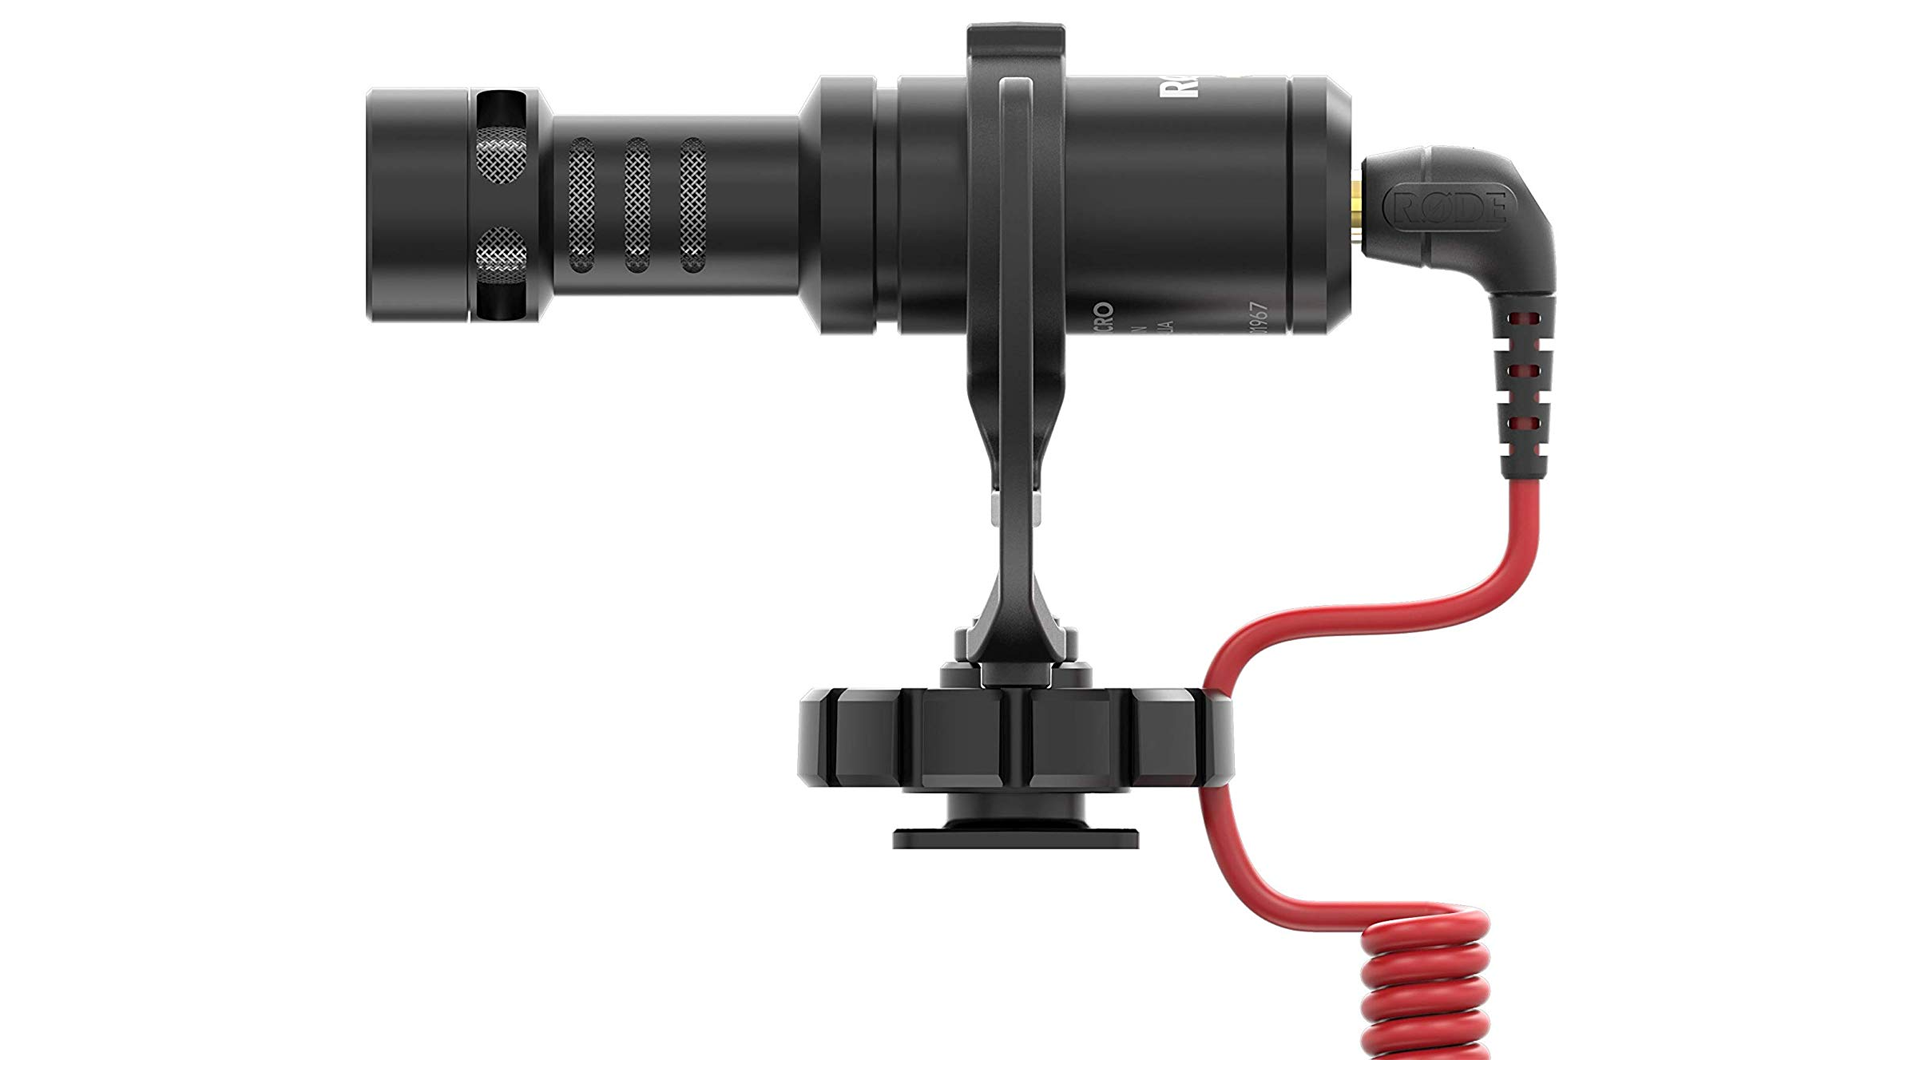 The Rode VideoMicro Compact Microphone